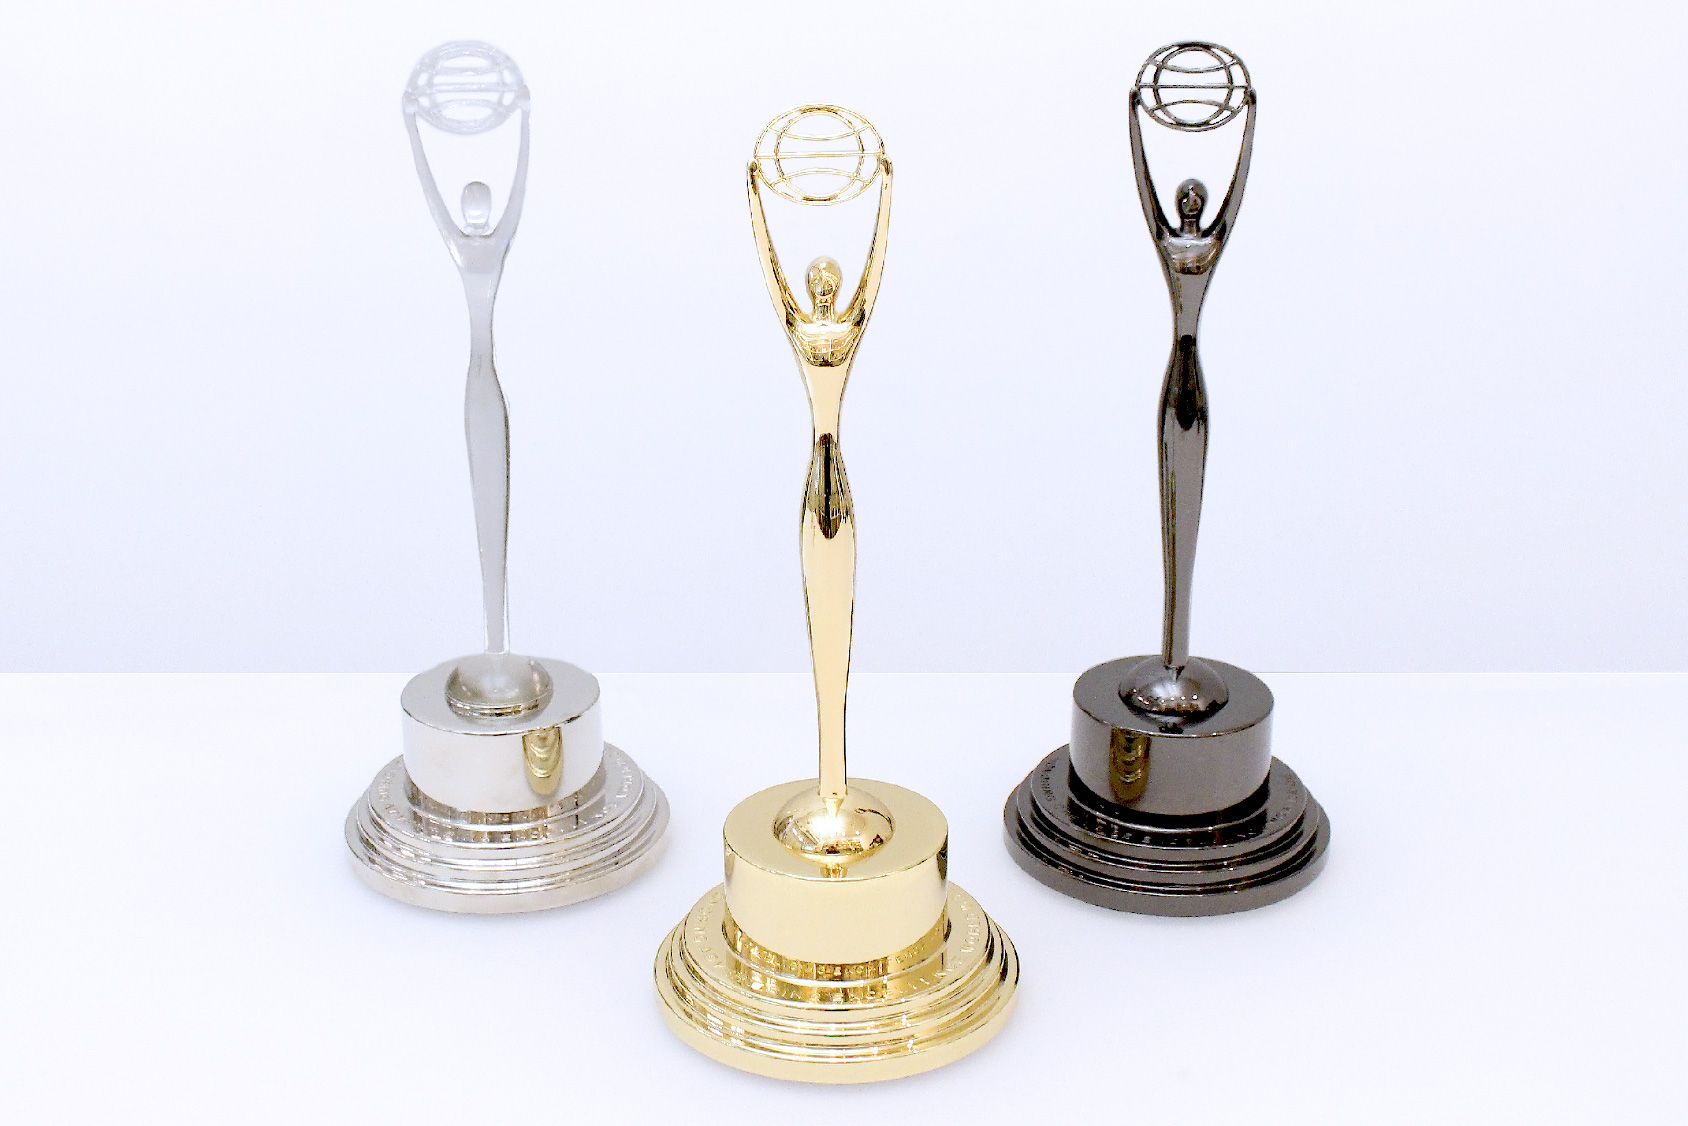 Three Clio trophies in crystal, gold and black displayed on a white table at Society Awards NYC headquarters